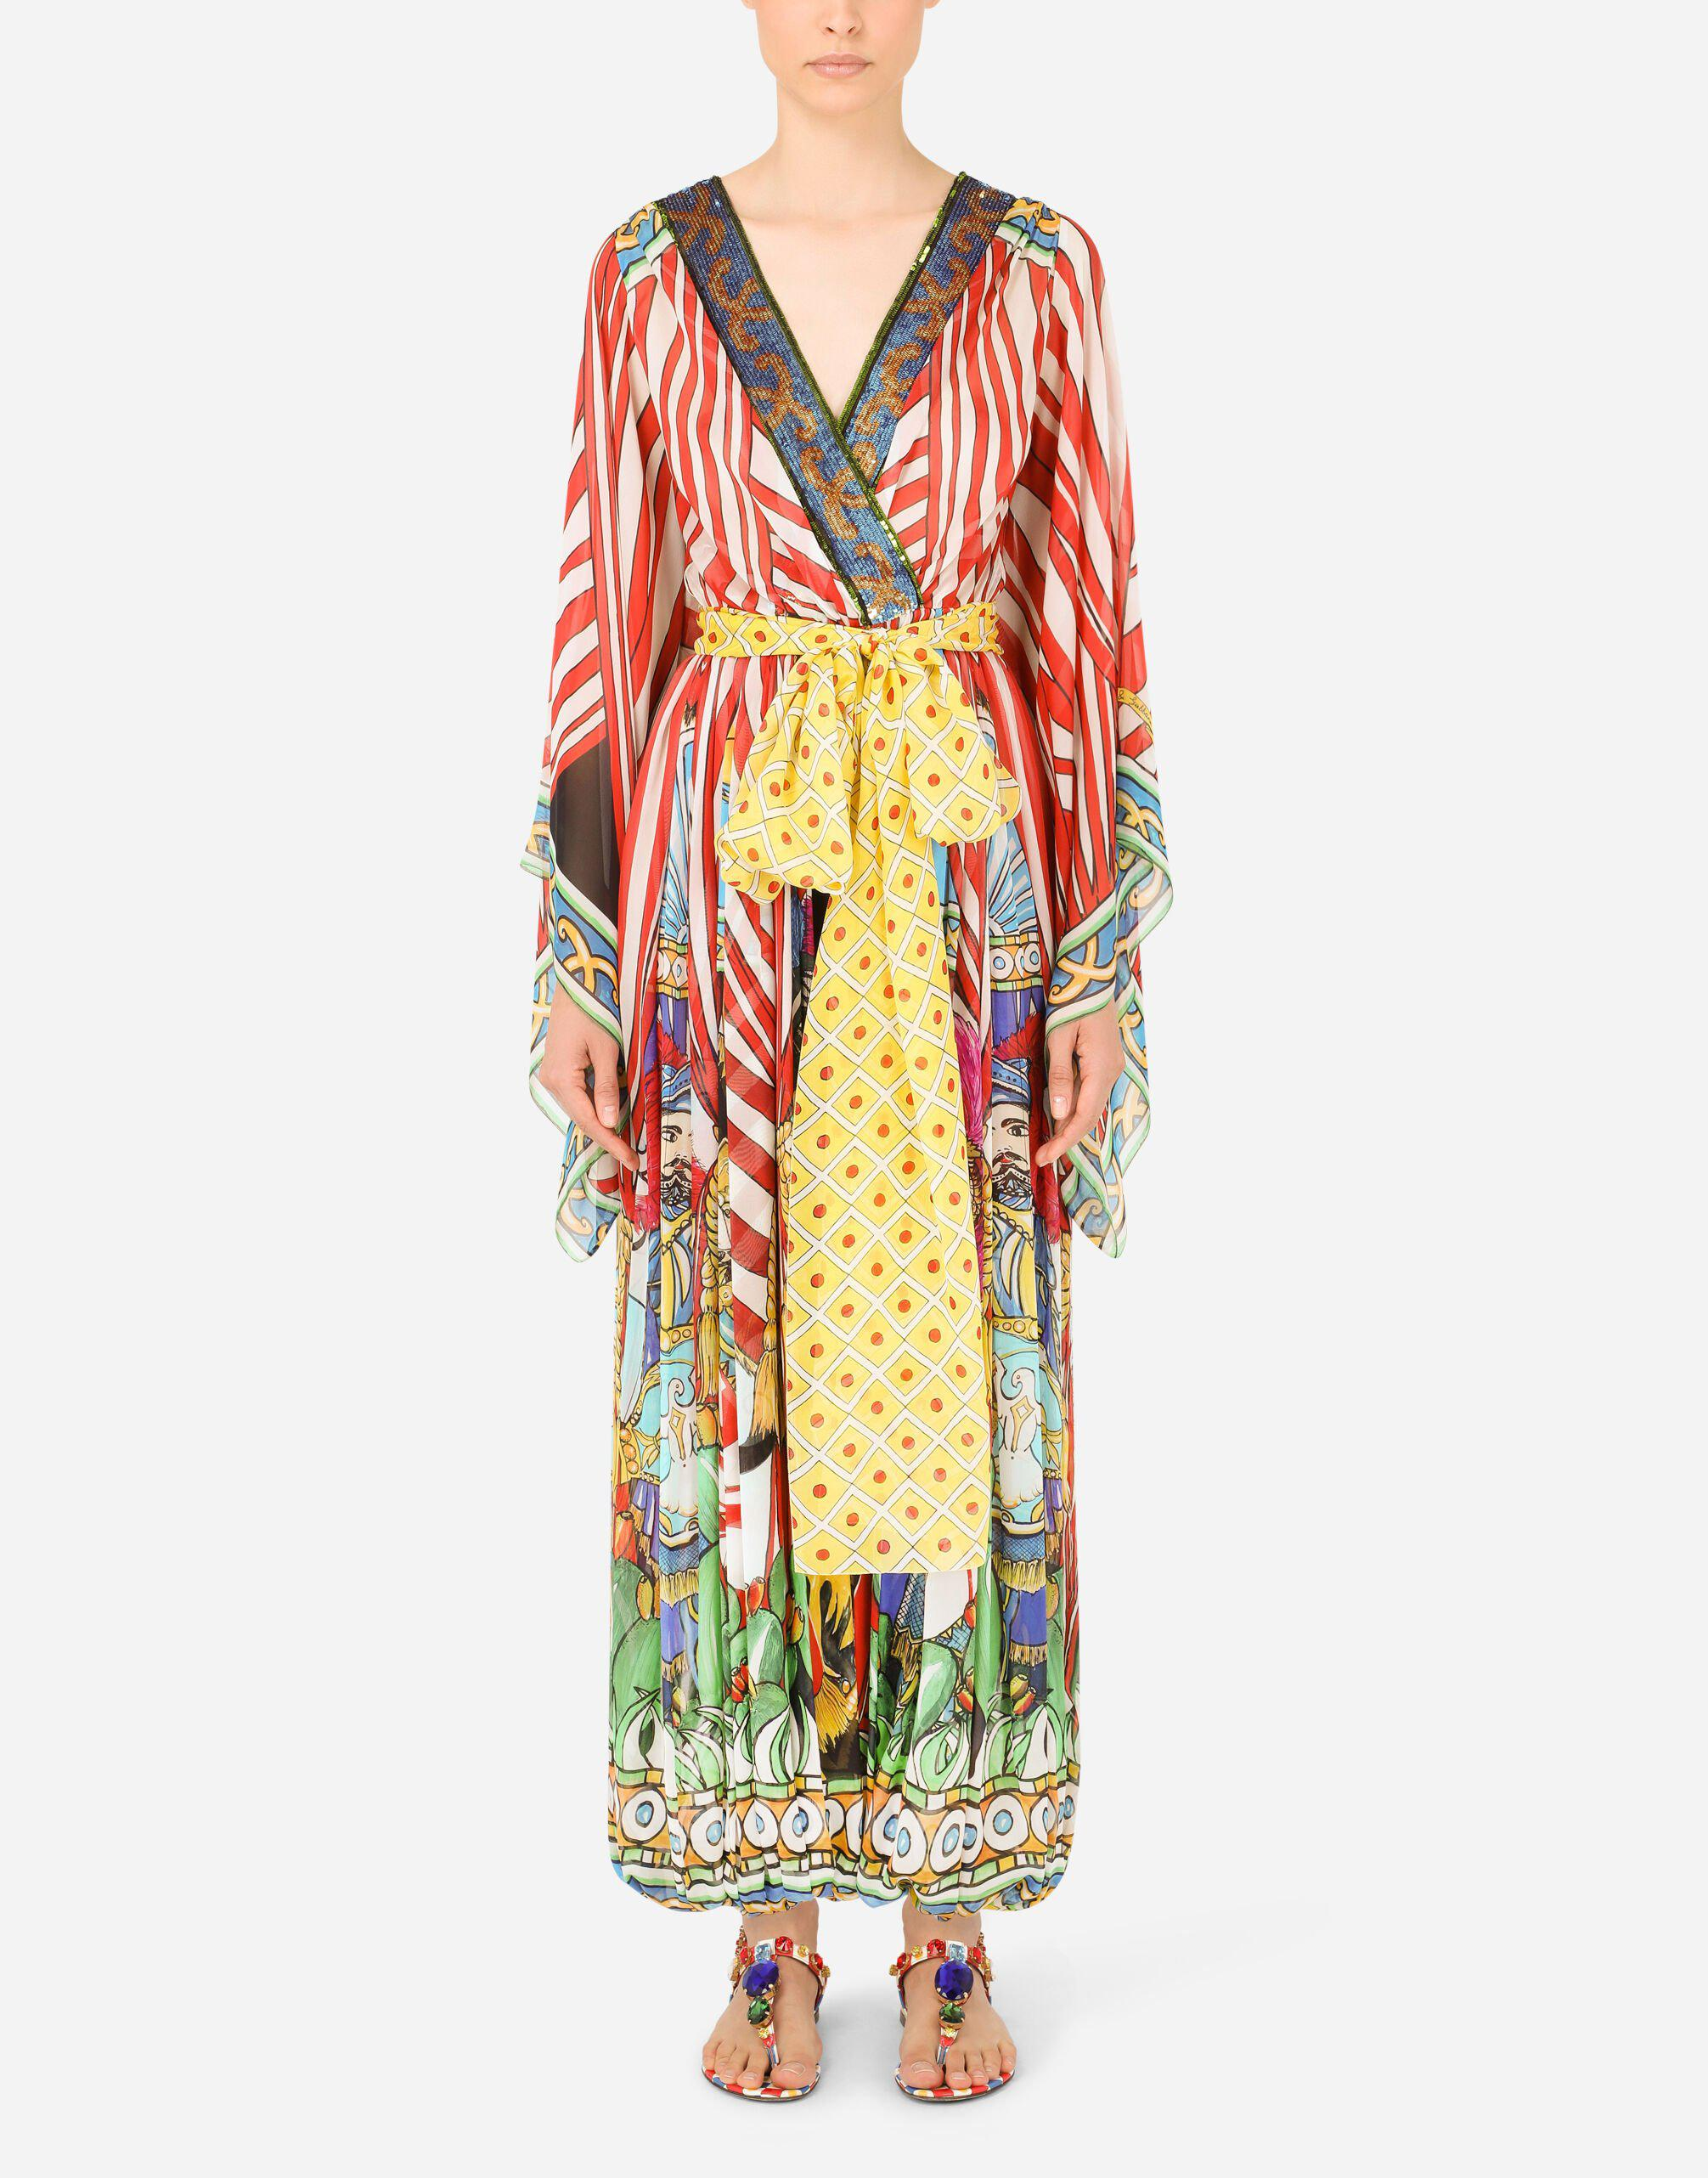 Carretto-print chiffon jumpsuit with sequined detailing